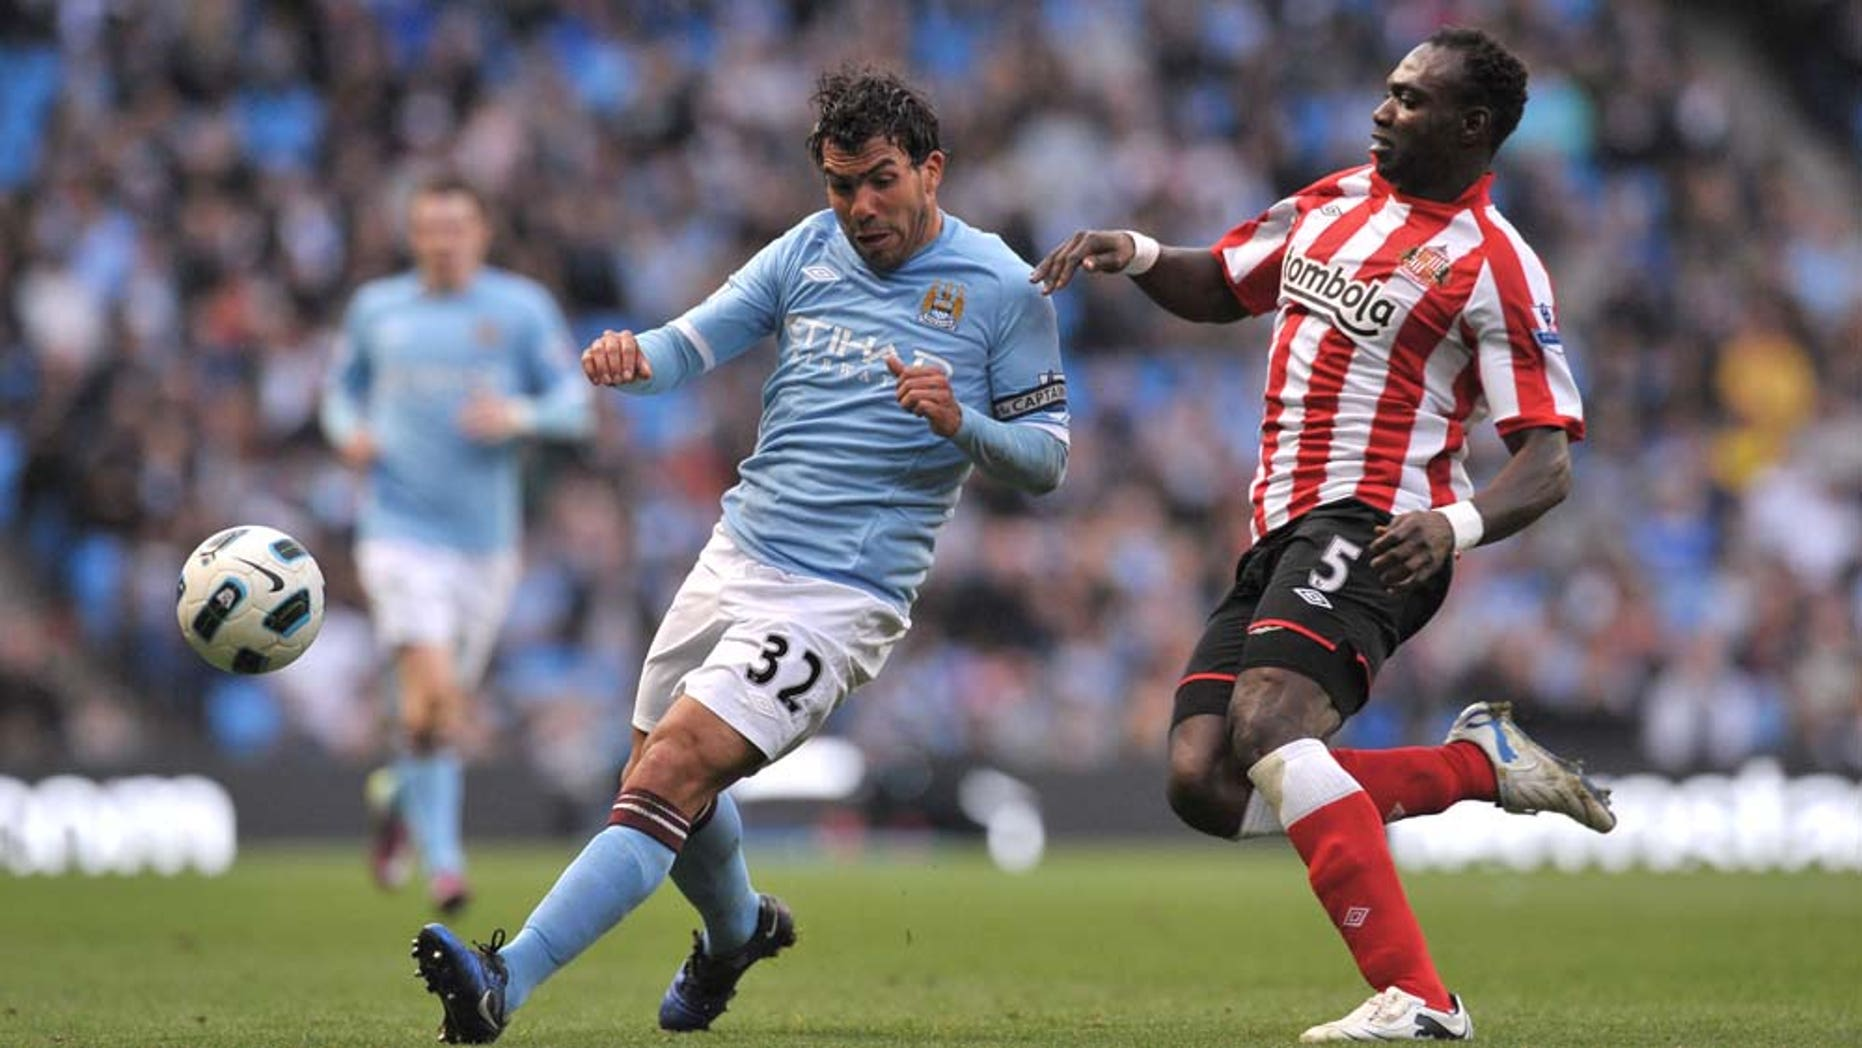 Manchester City's Carlos Tevez, left, keeps the ball from Sunderland's John Mensah during their English Premier League soccer match at The City of Manchester Stadium, Manchester, England, Sunday April 3, 2011. (AP Photo/Jon Super)   NO INTERNET/MOBILE USAGE WITHOUT FOOTBALL ASSOCIATION PREMIER LEAGUE(FAPL)LICENCE. EMAIL info@football-dataco.com FOR DETAILS.